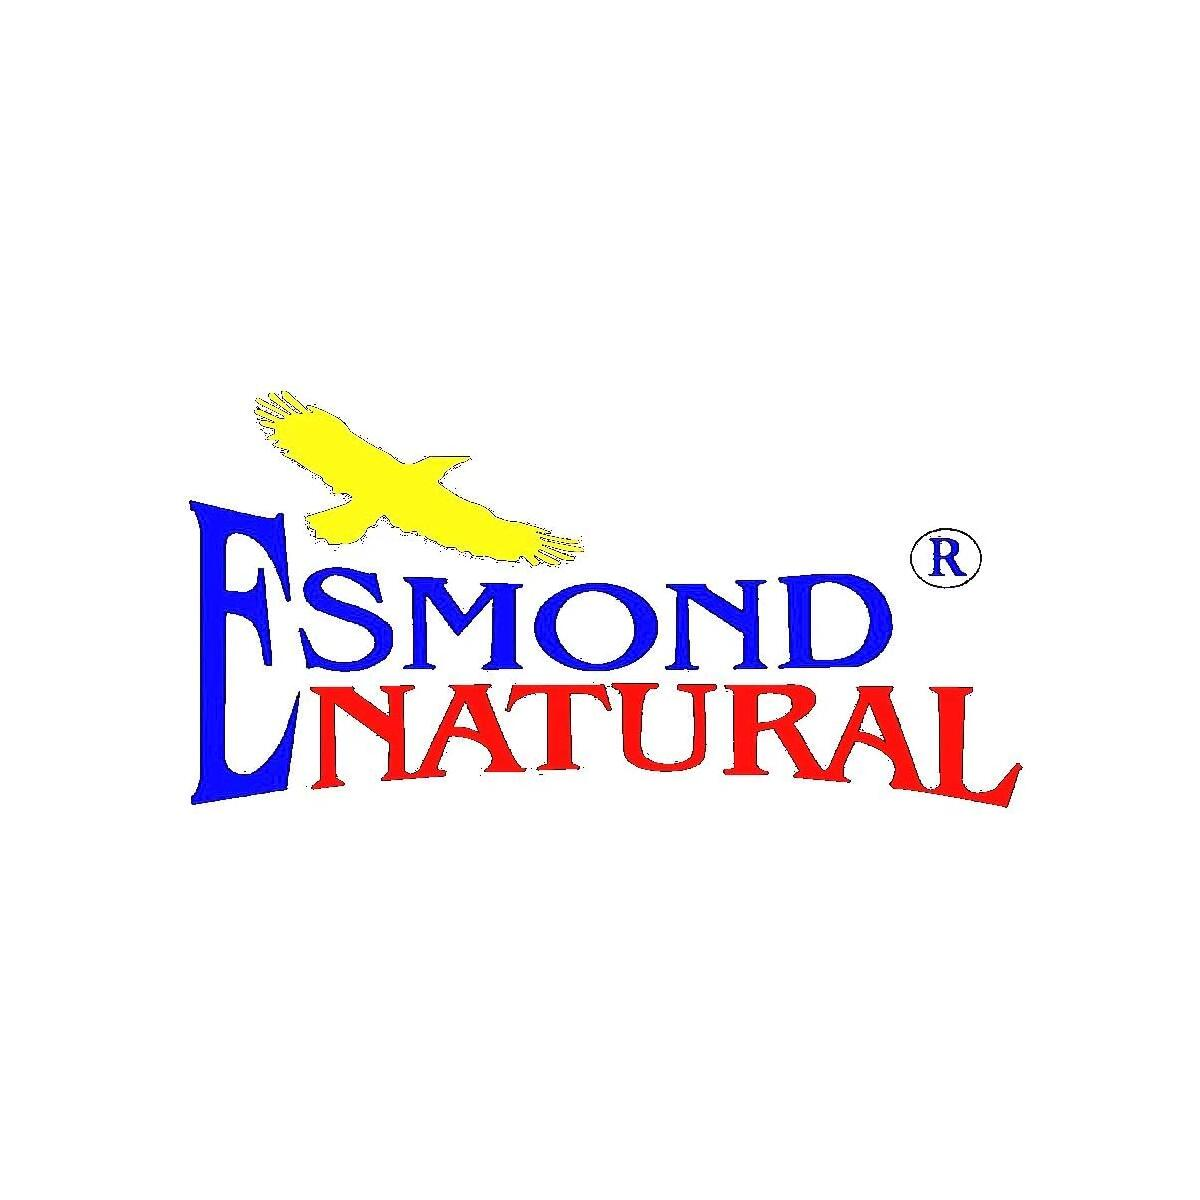 (3 Count, 10% Off) Esmond Natural: ENC Silybum Marianum Seed Oil Complex (Liver Support), GMP, Natural Product Assn Certified, Made in USA-1000mg, 180 Tablets